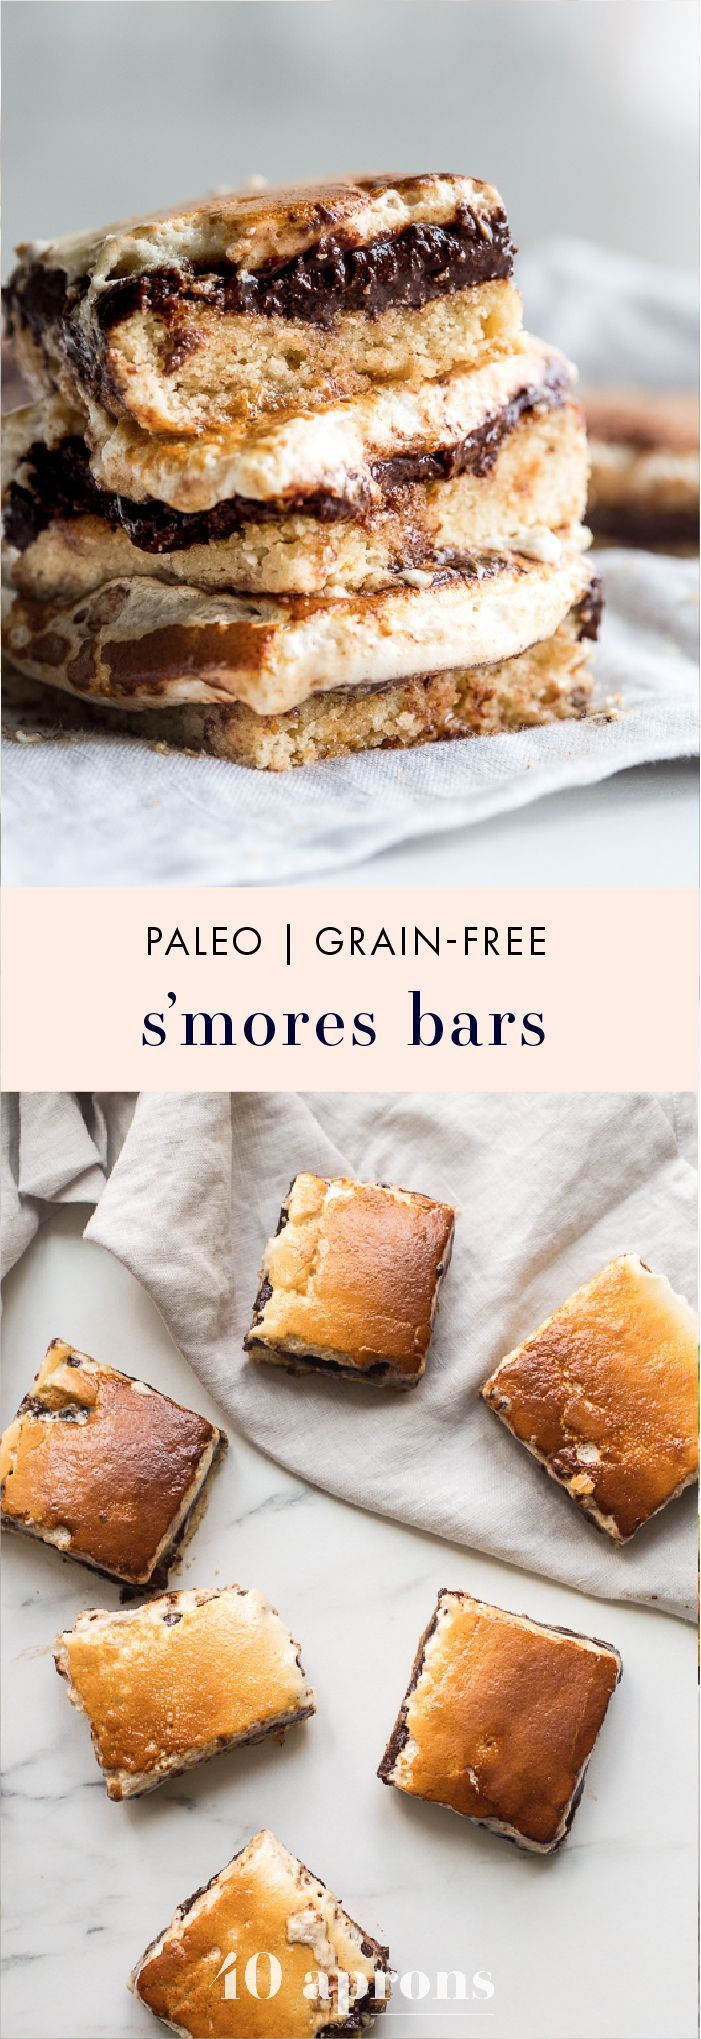 These paleo smores bars are the perfect paleo dessert this summer. A graham cracker crust, topped with chocolate and a burnt marshmallow layer, they're inspired by the classic summer treat but are grain-free, dairy-free, and refined-sugar-free. These paleo smores bars are great for entertaining! | #paleo #glutenfree #dairyfree